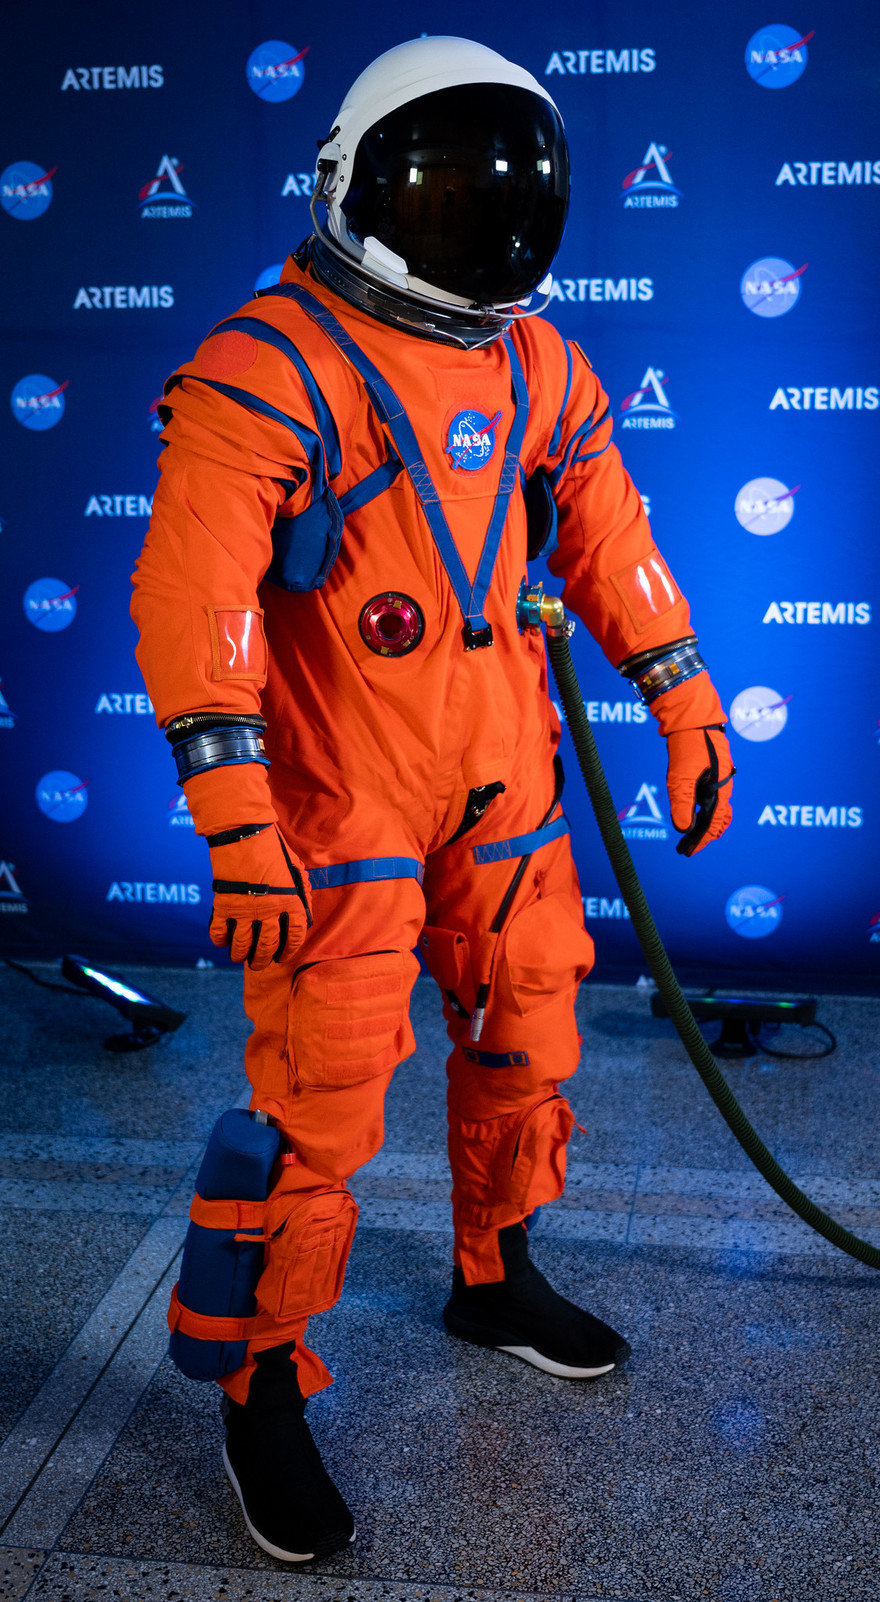 How Astronauts Get Their Spacesuits On (and Other Fun Facts)